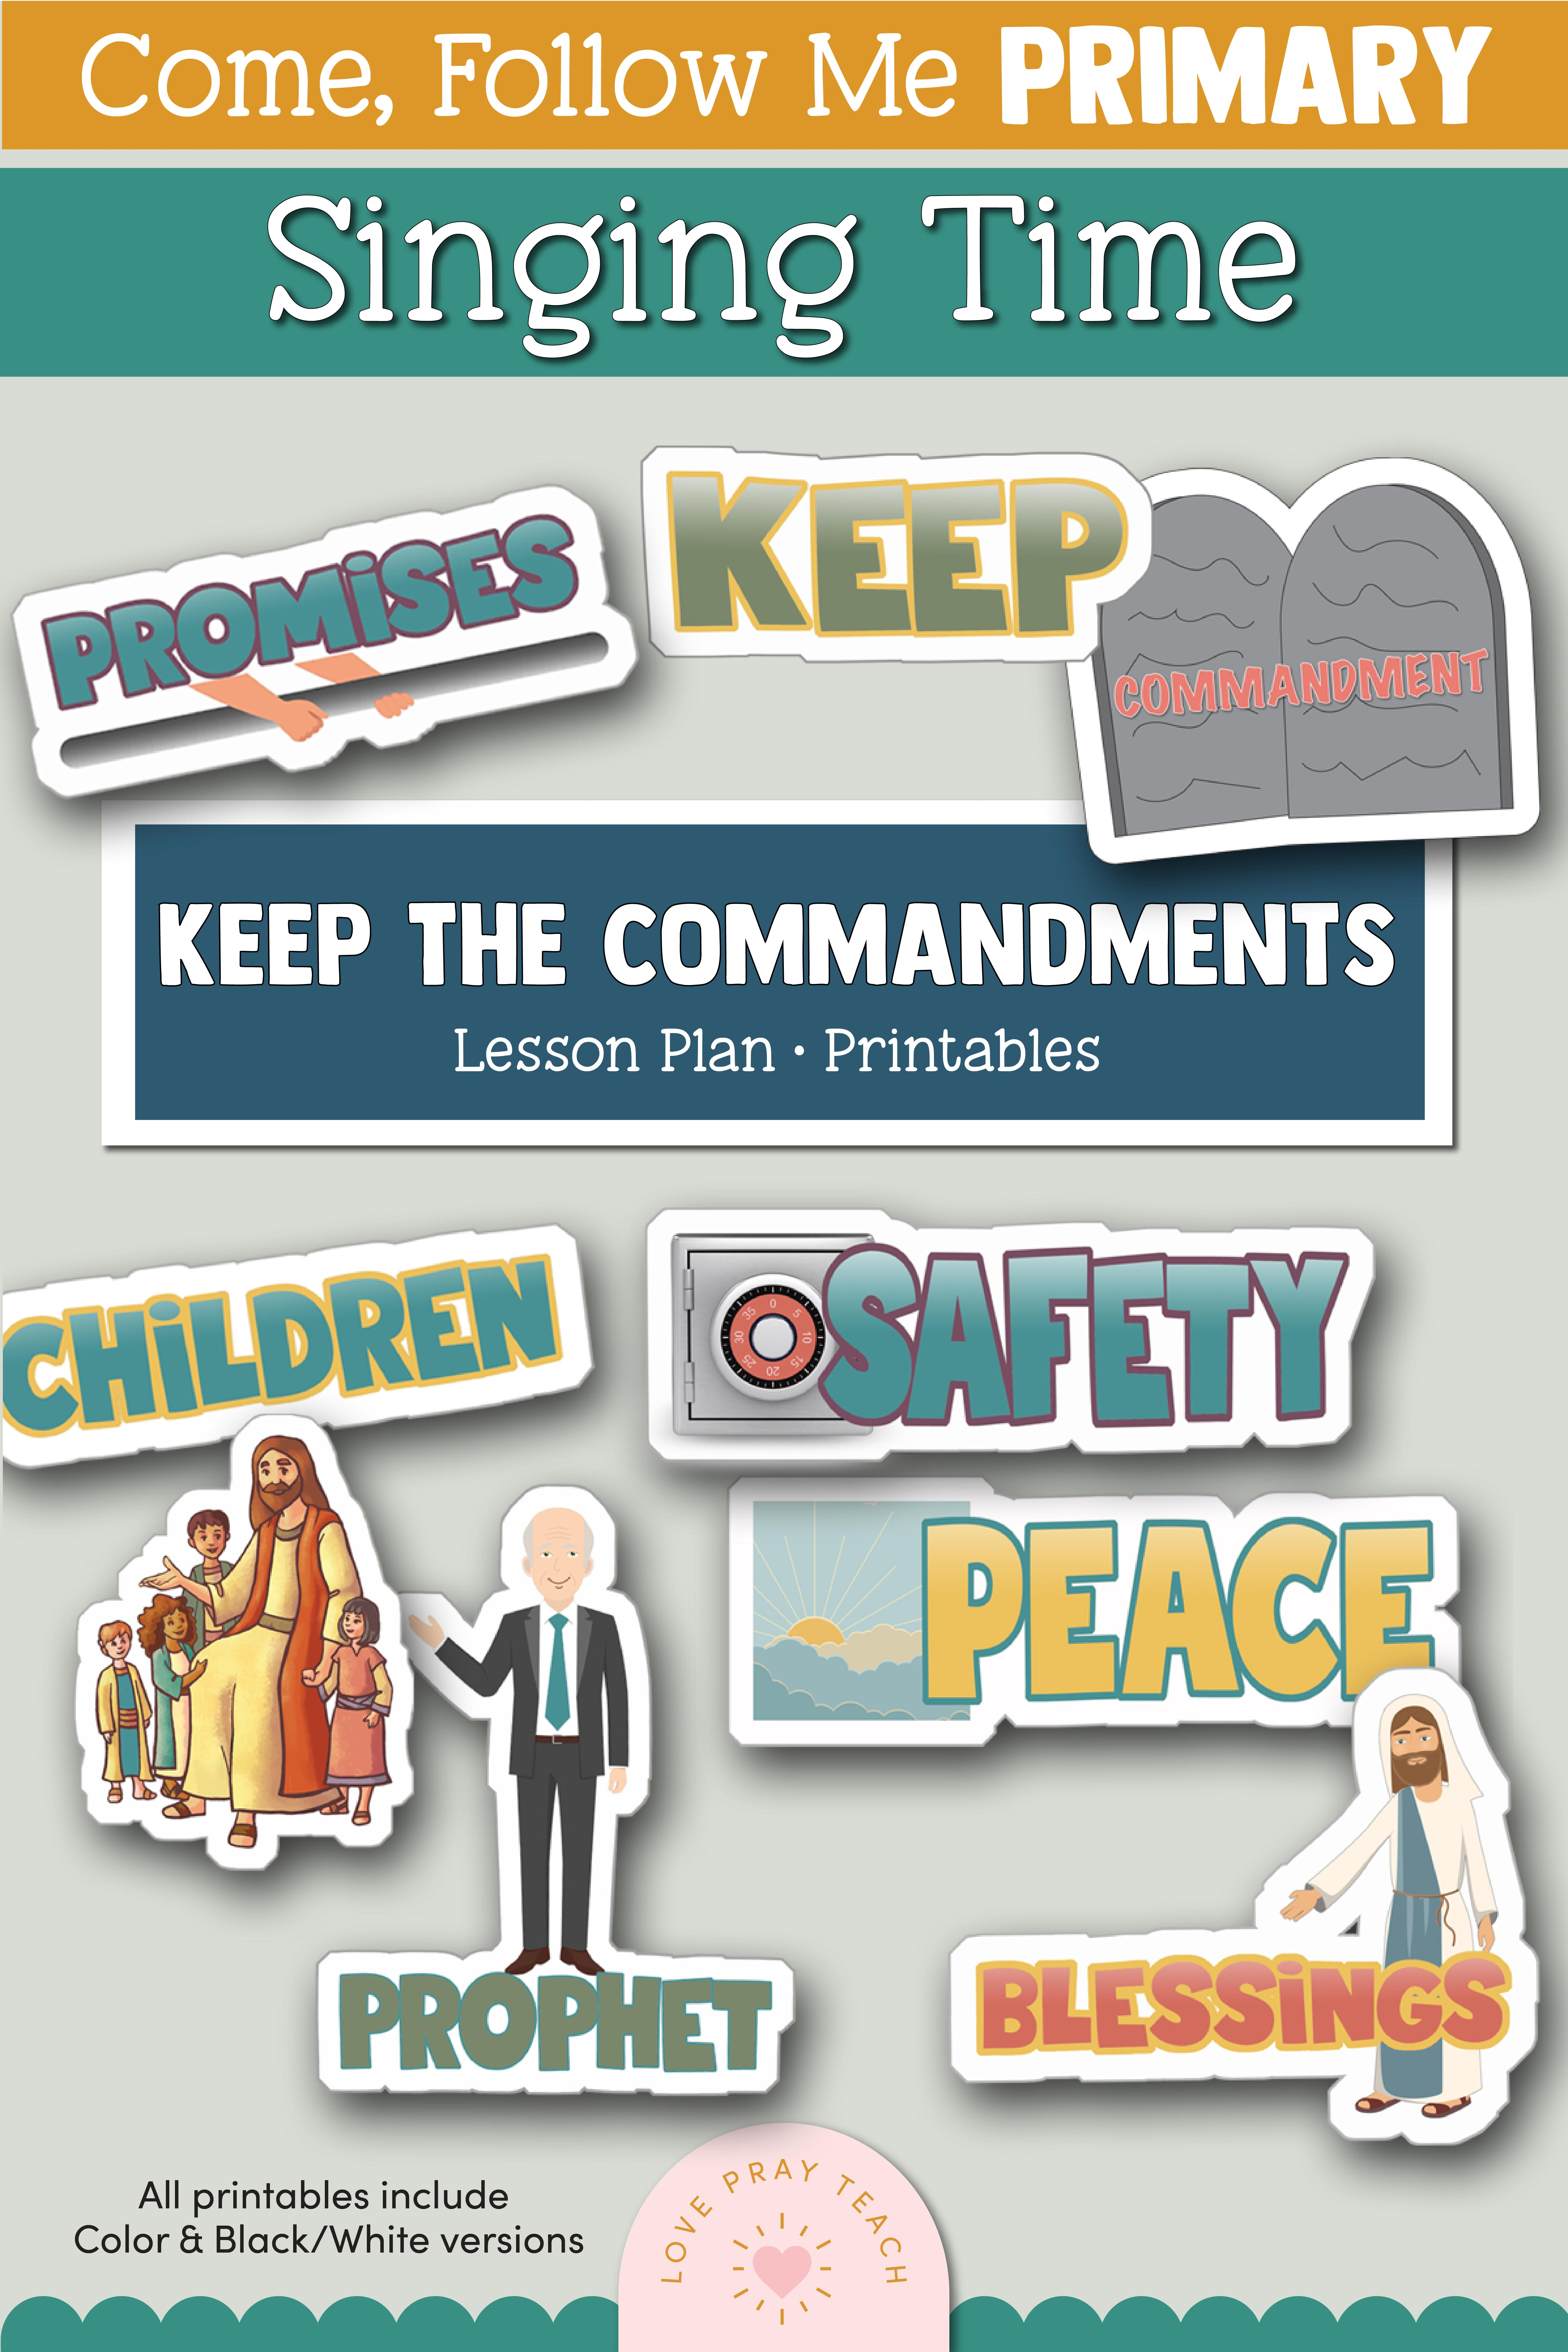 "Come, Follow Me for Primary Singing Time: 2020 ""Keep the Commandments"" Printable Lesson Packets www.LovePrayTeach.com"